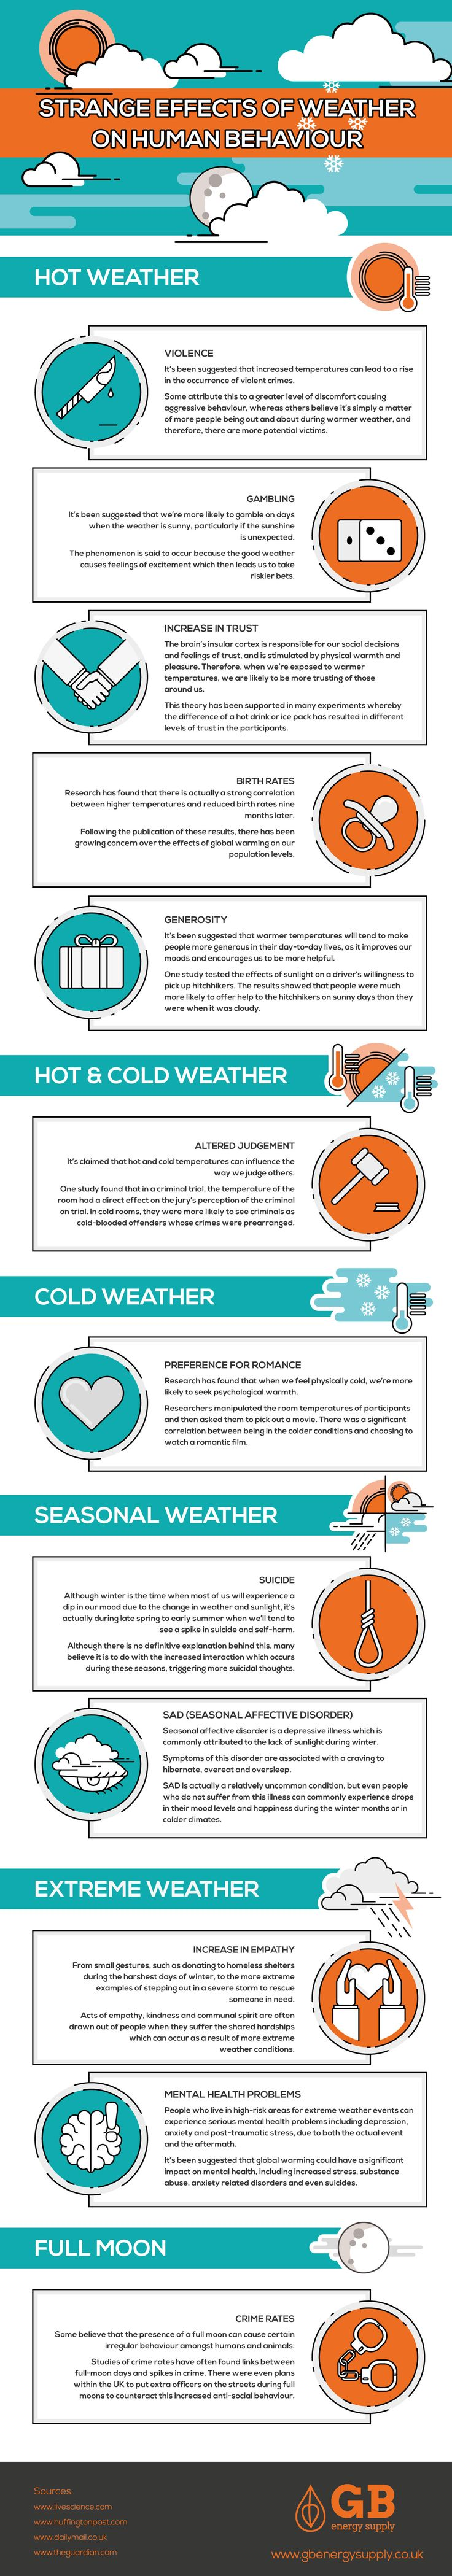 The Strange Effects of Weather on Human Behaviour #Infographic #Weather